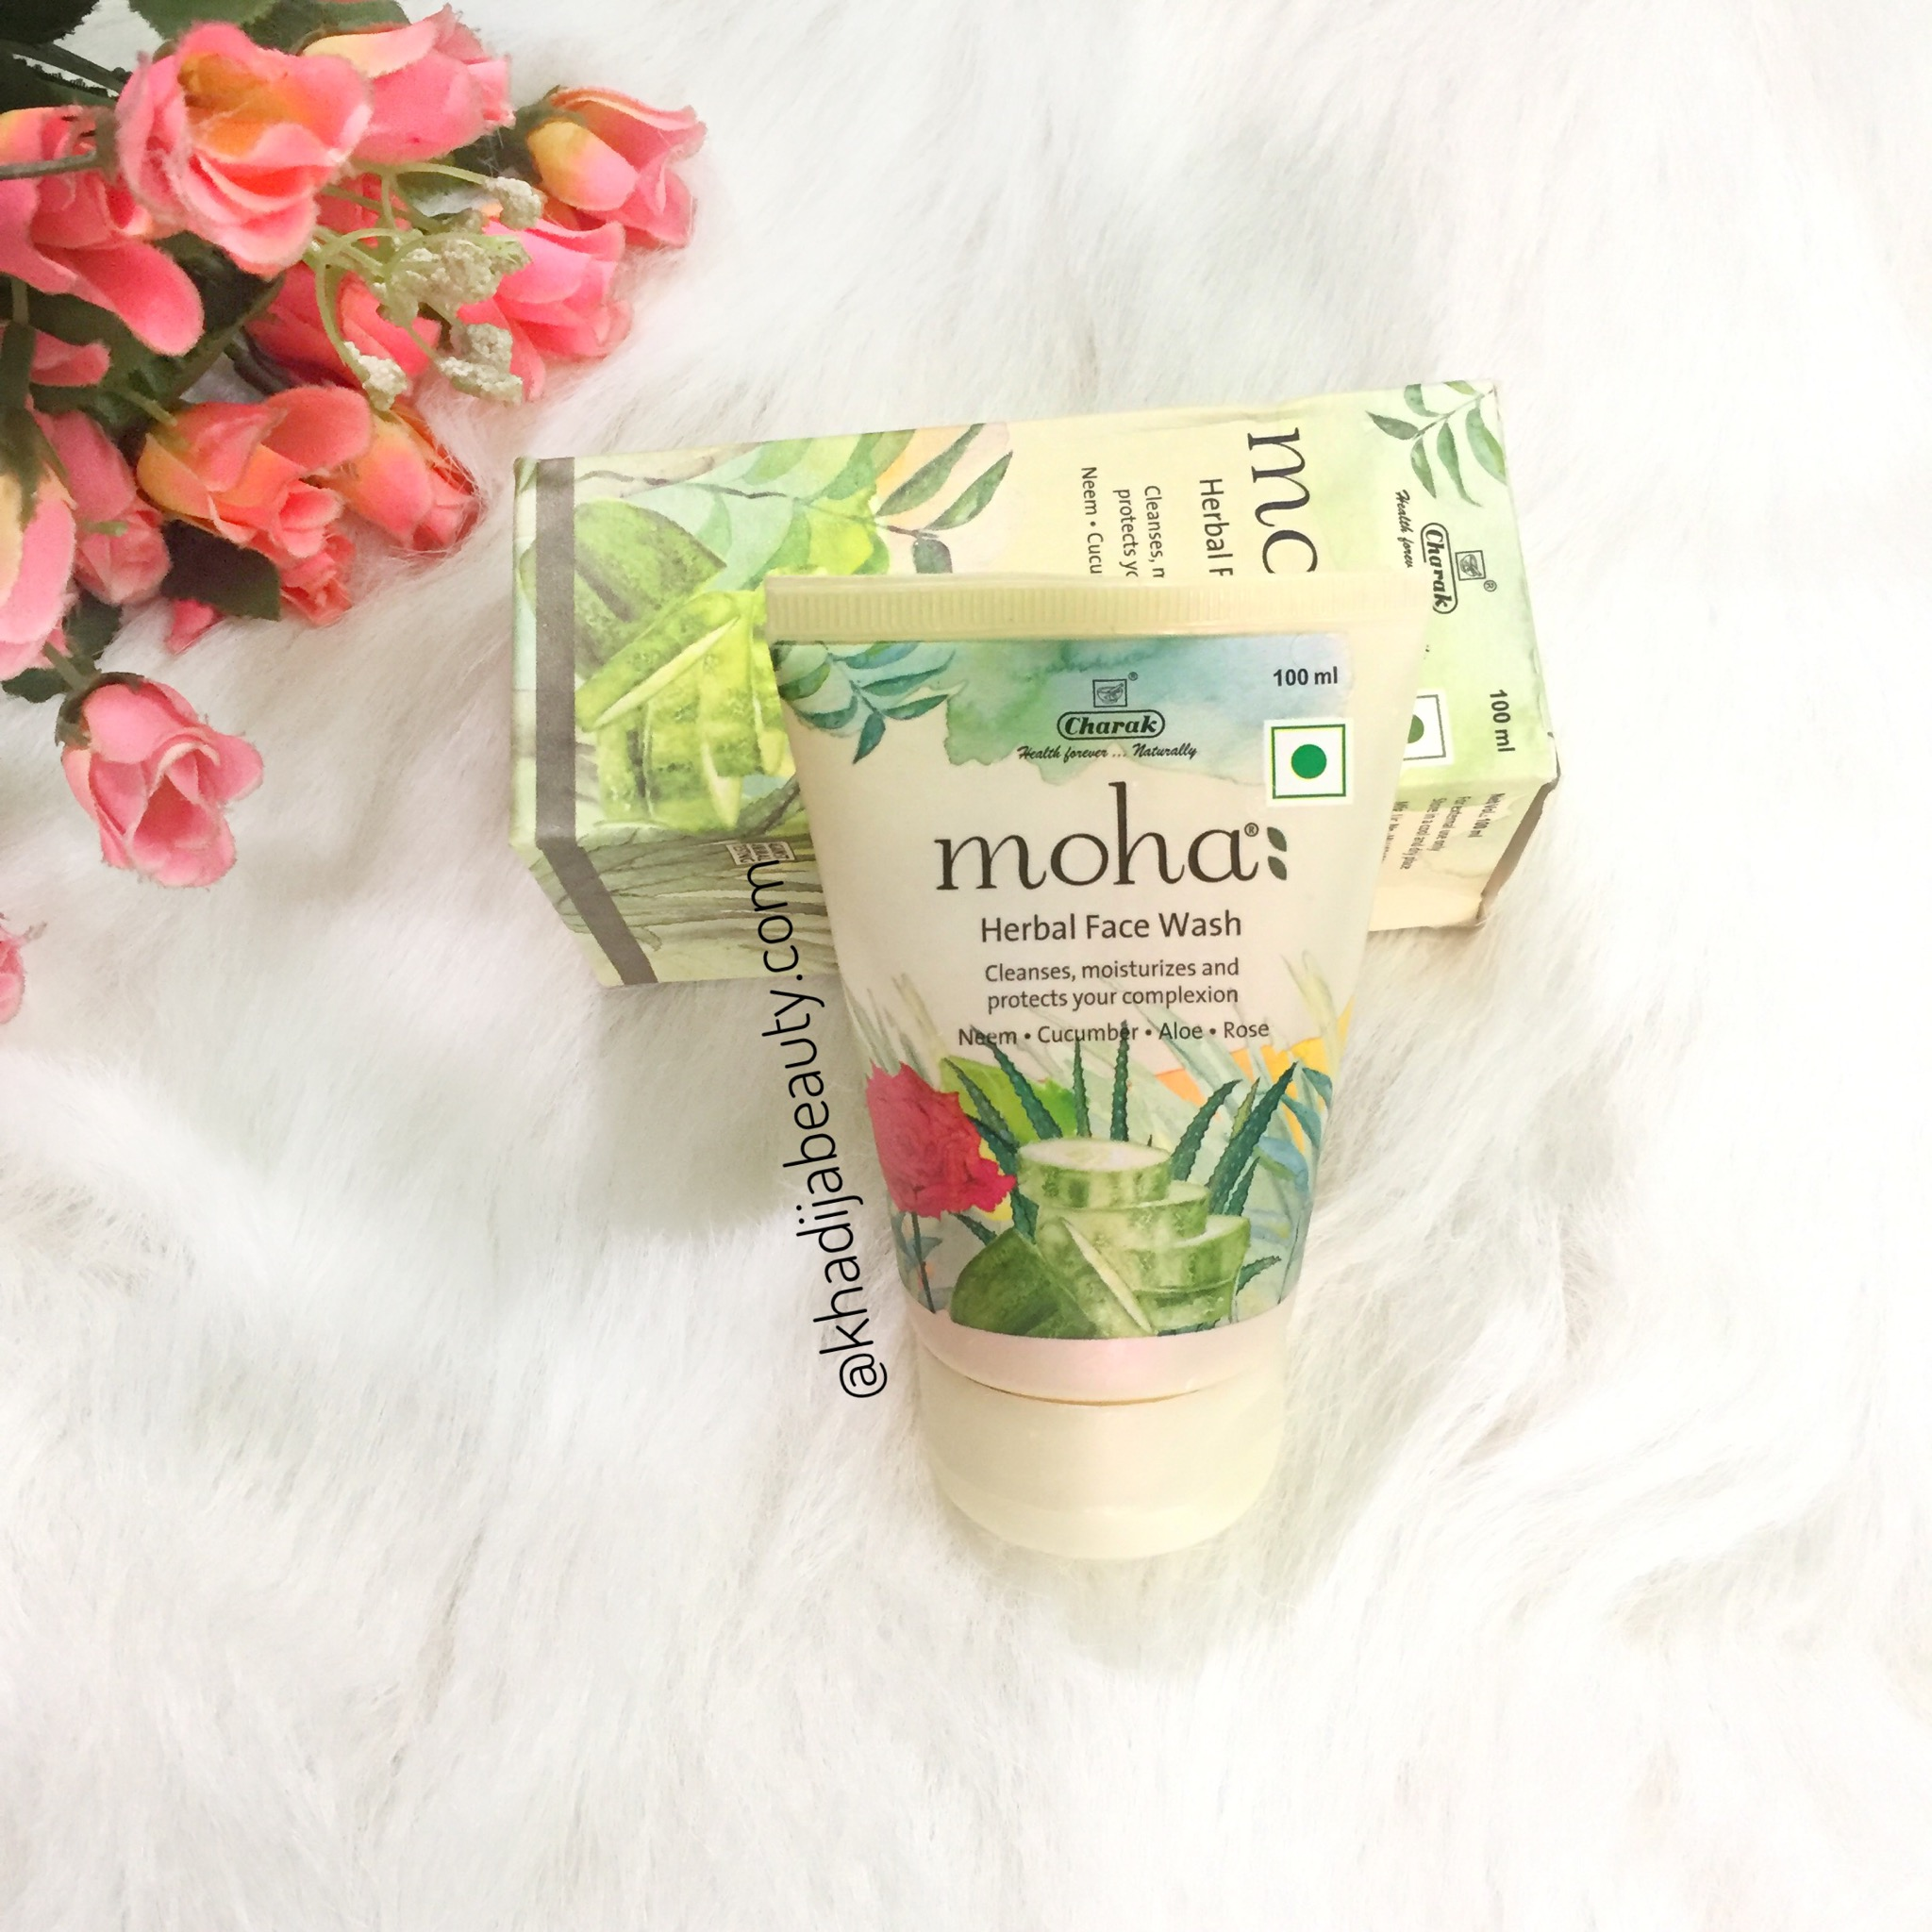 moha herbal face wash, khadija beauty